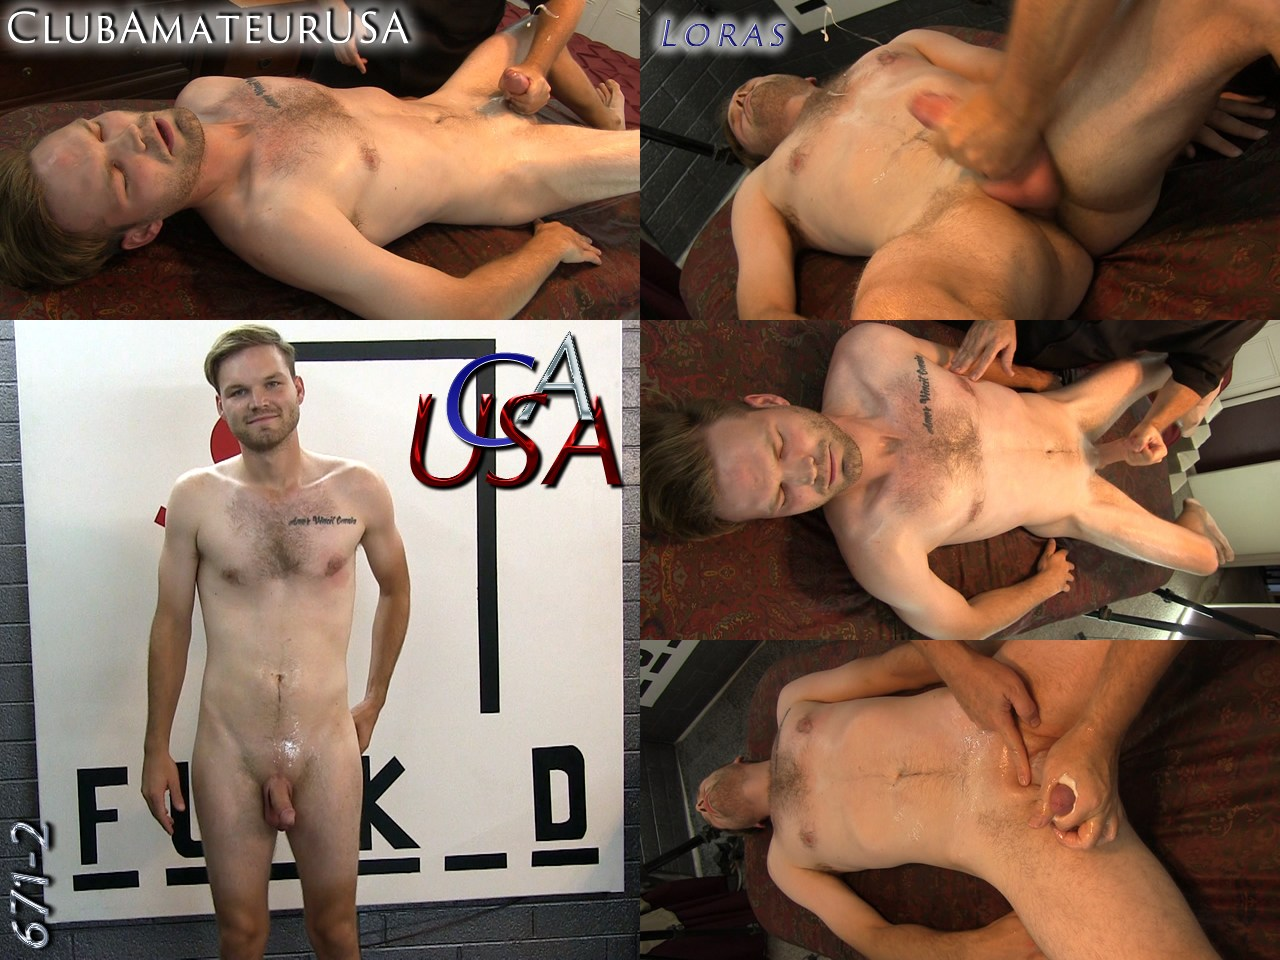 Download or Stream CAUSA 671 Loras - 2 of 2 - Click Here Now